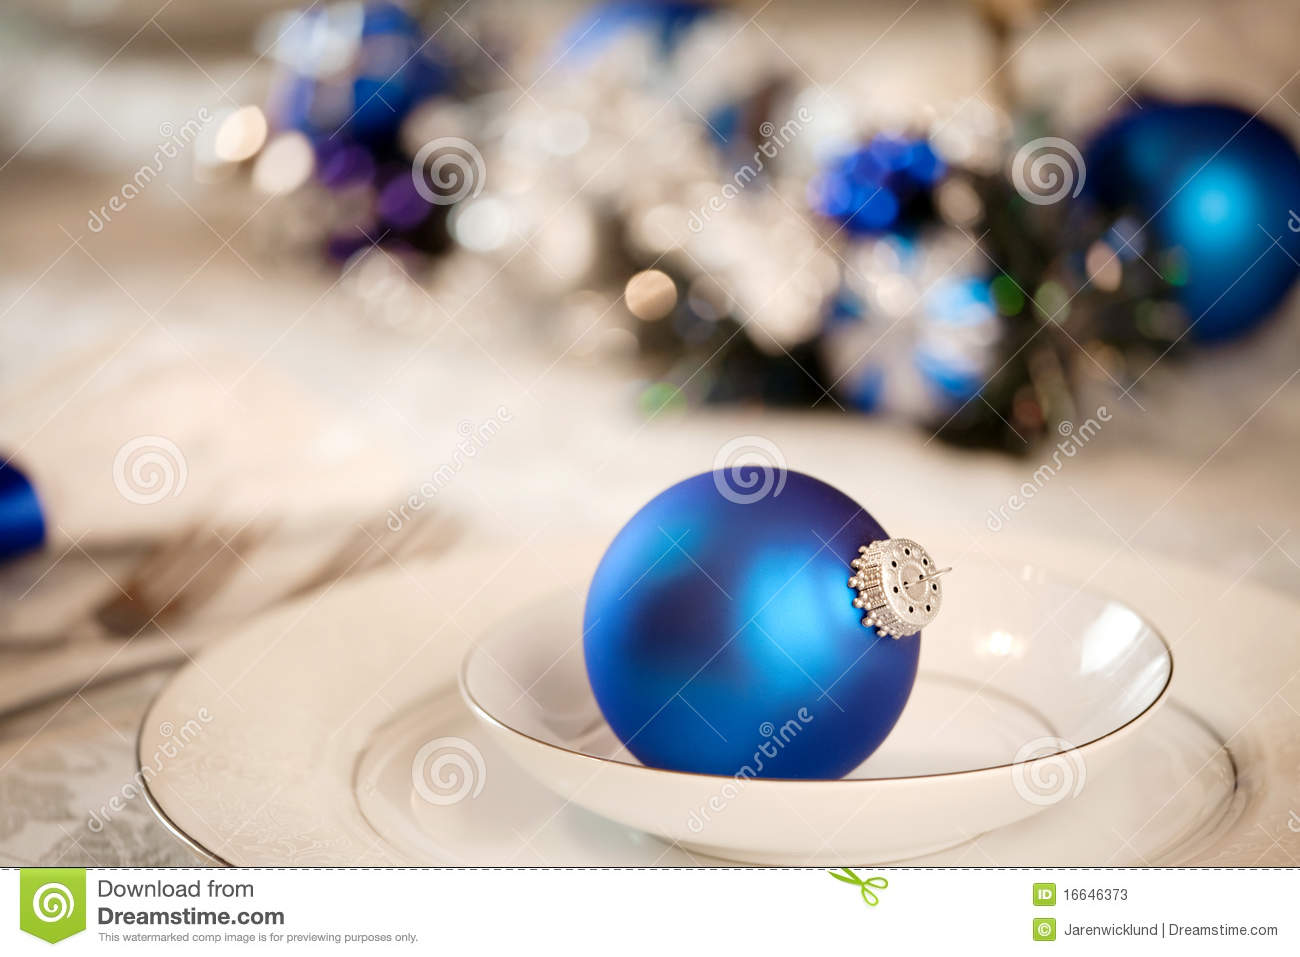 More Similar Stock Images Of White And Blue Table Decorations